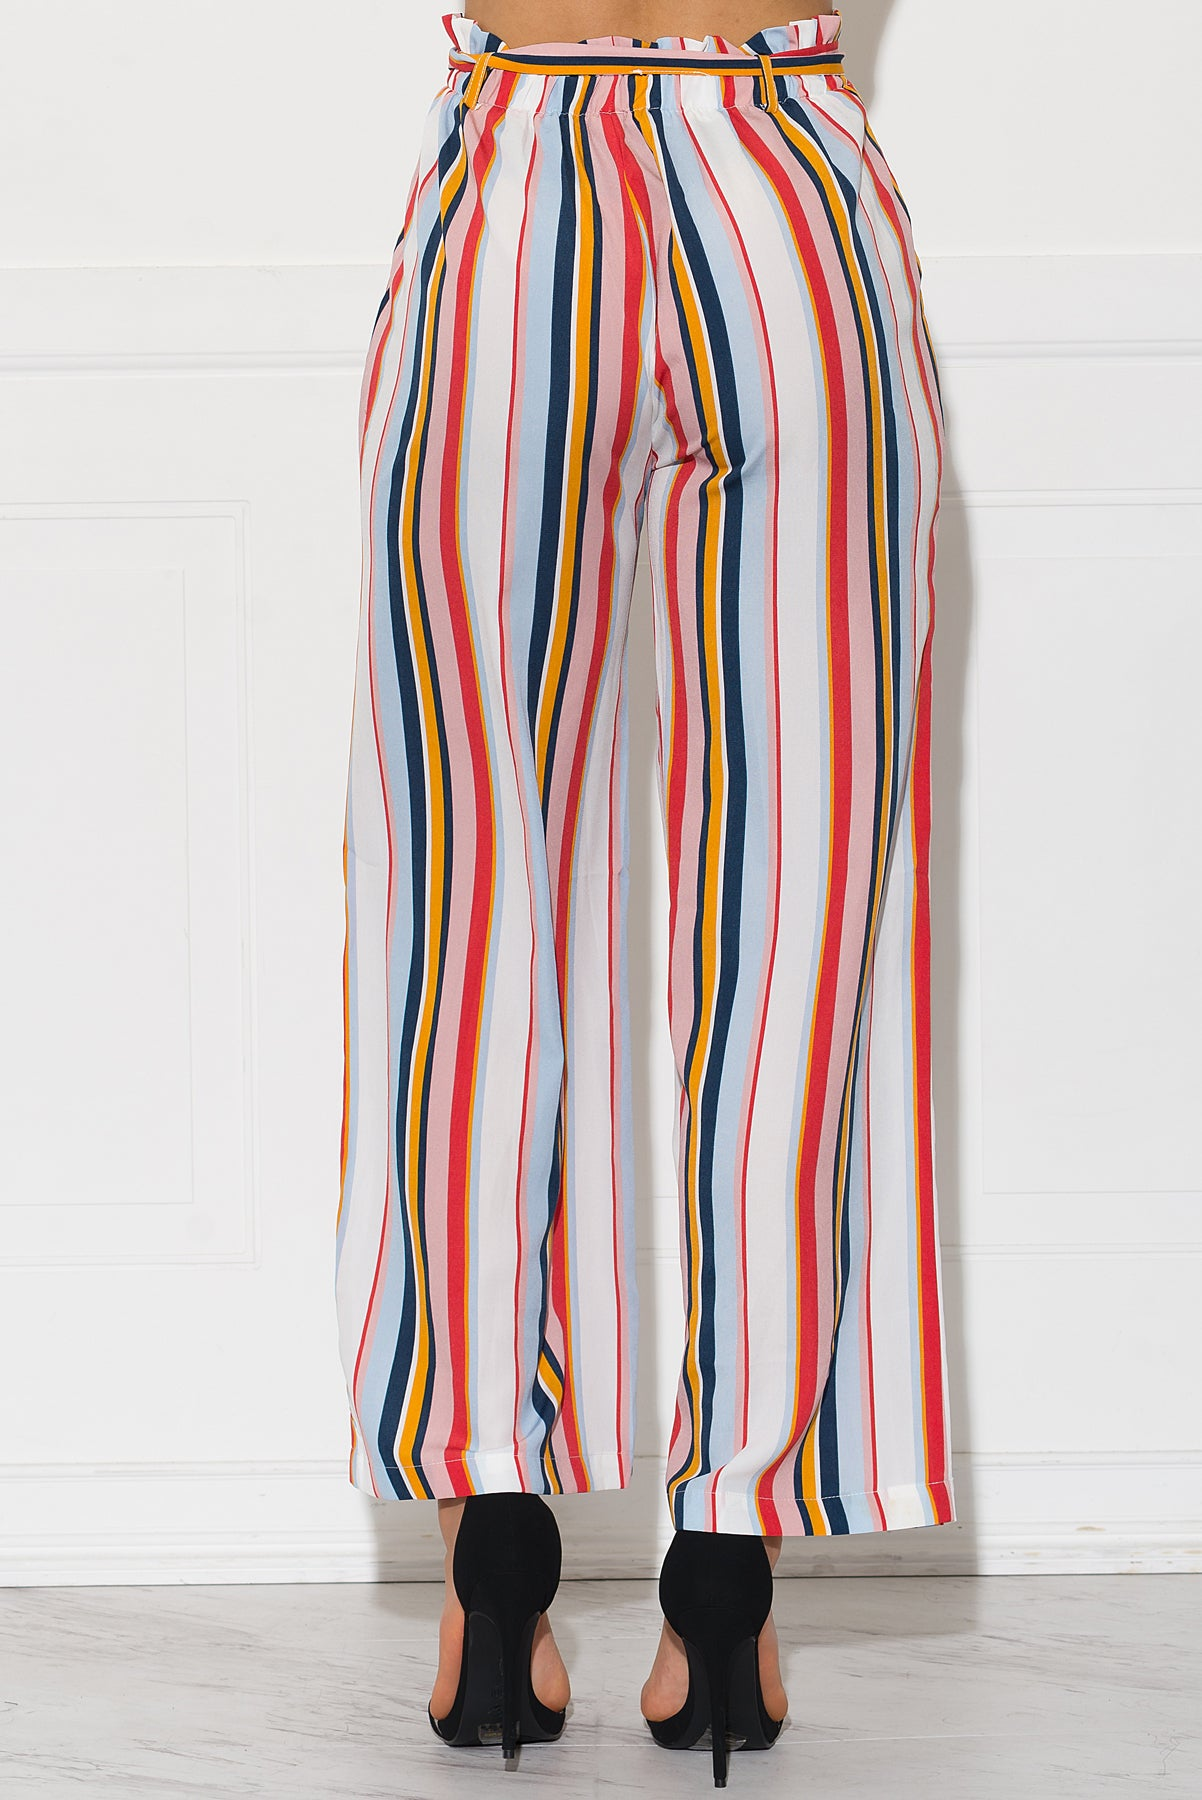 Linette Striped Pants - Light Blue/Mauve